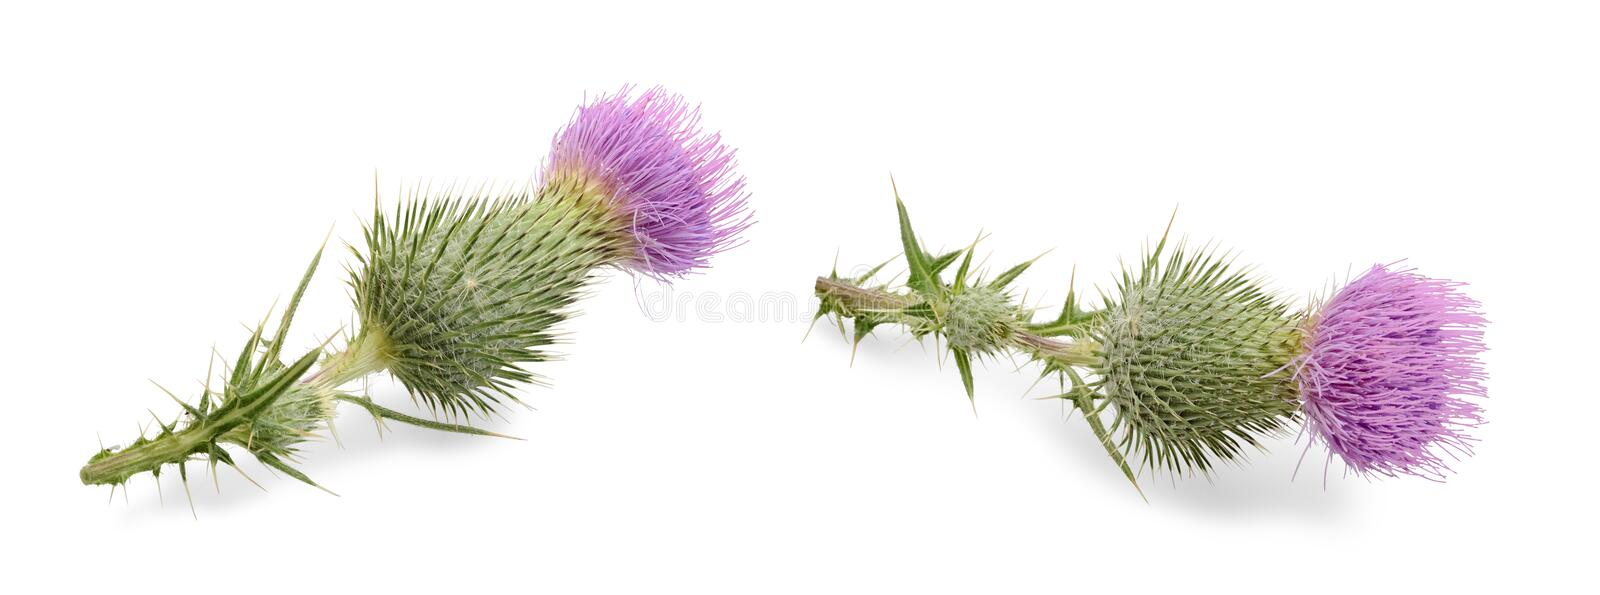 Flowers cirsium vulgare on white. Set of flowers cirsium vulgare spear thistle, bull thistle or common thistle isolated on white background. Plant with a lot of stock image